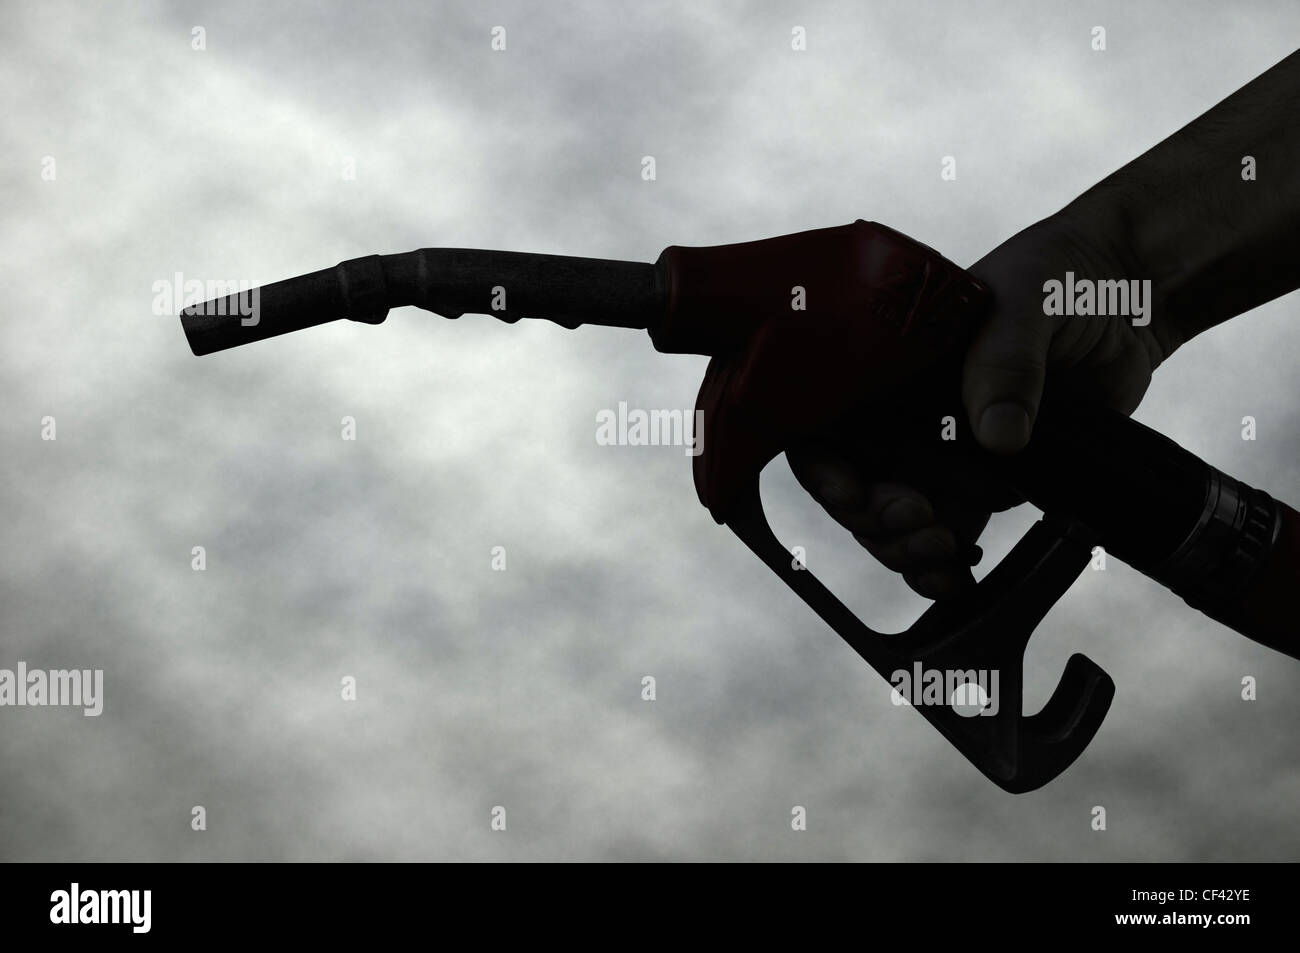 Hand Holding a Petrol Pump Nozzle Silhouetted Against a Dark Cloudy Sky. - Stock Image